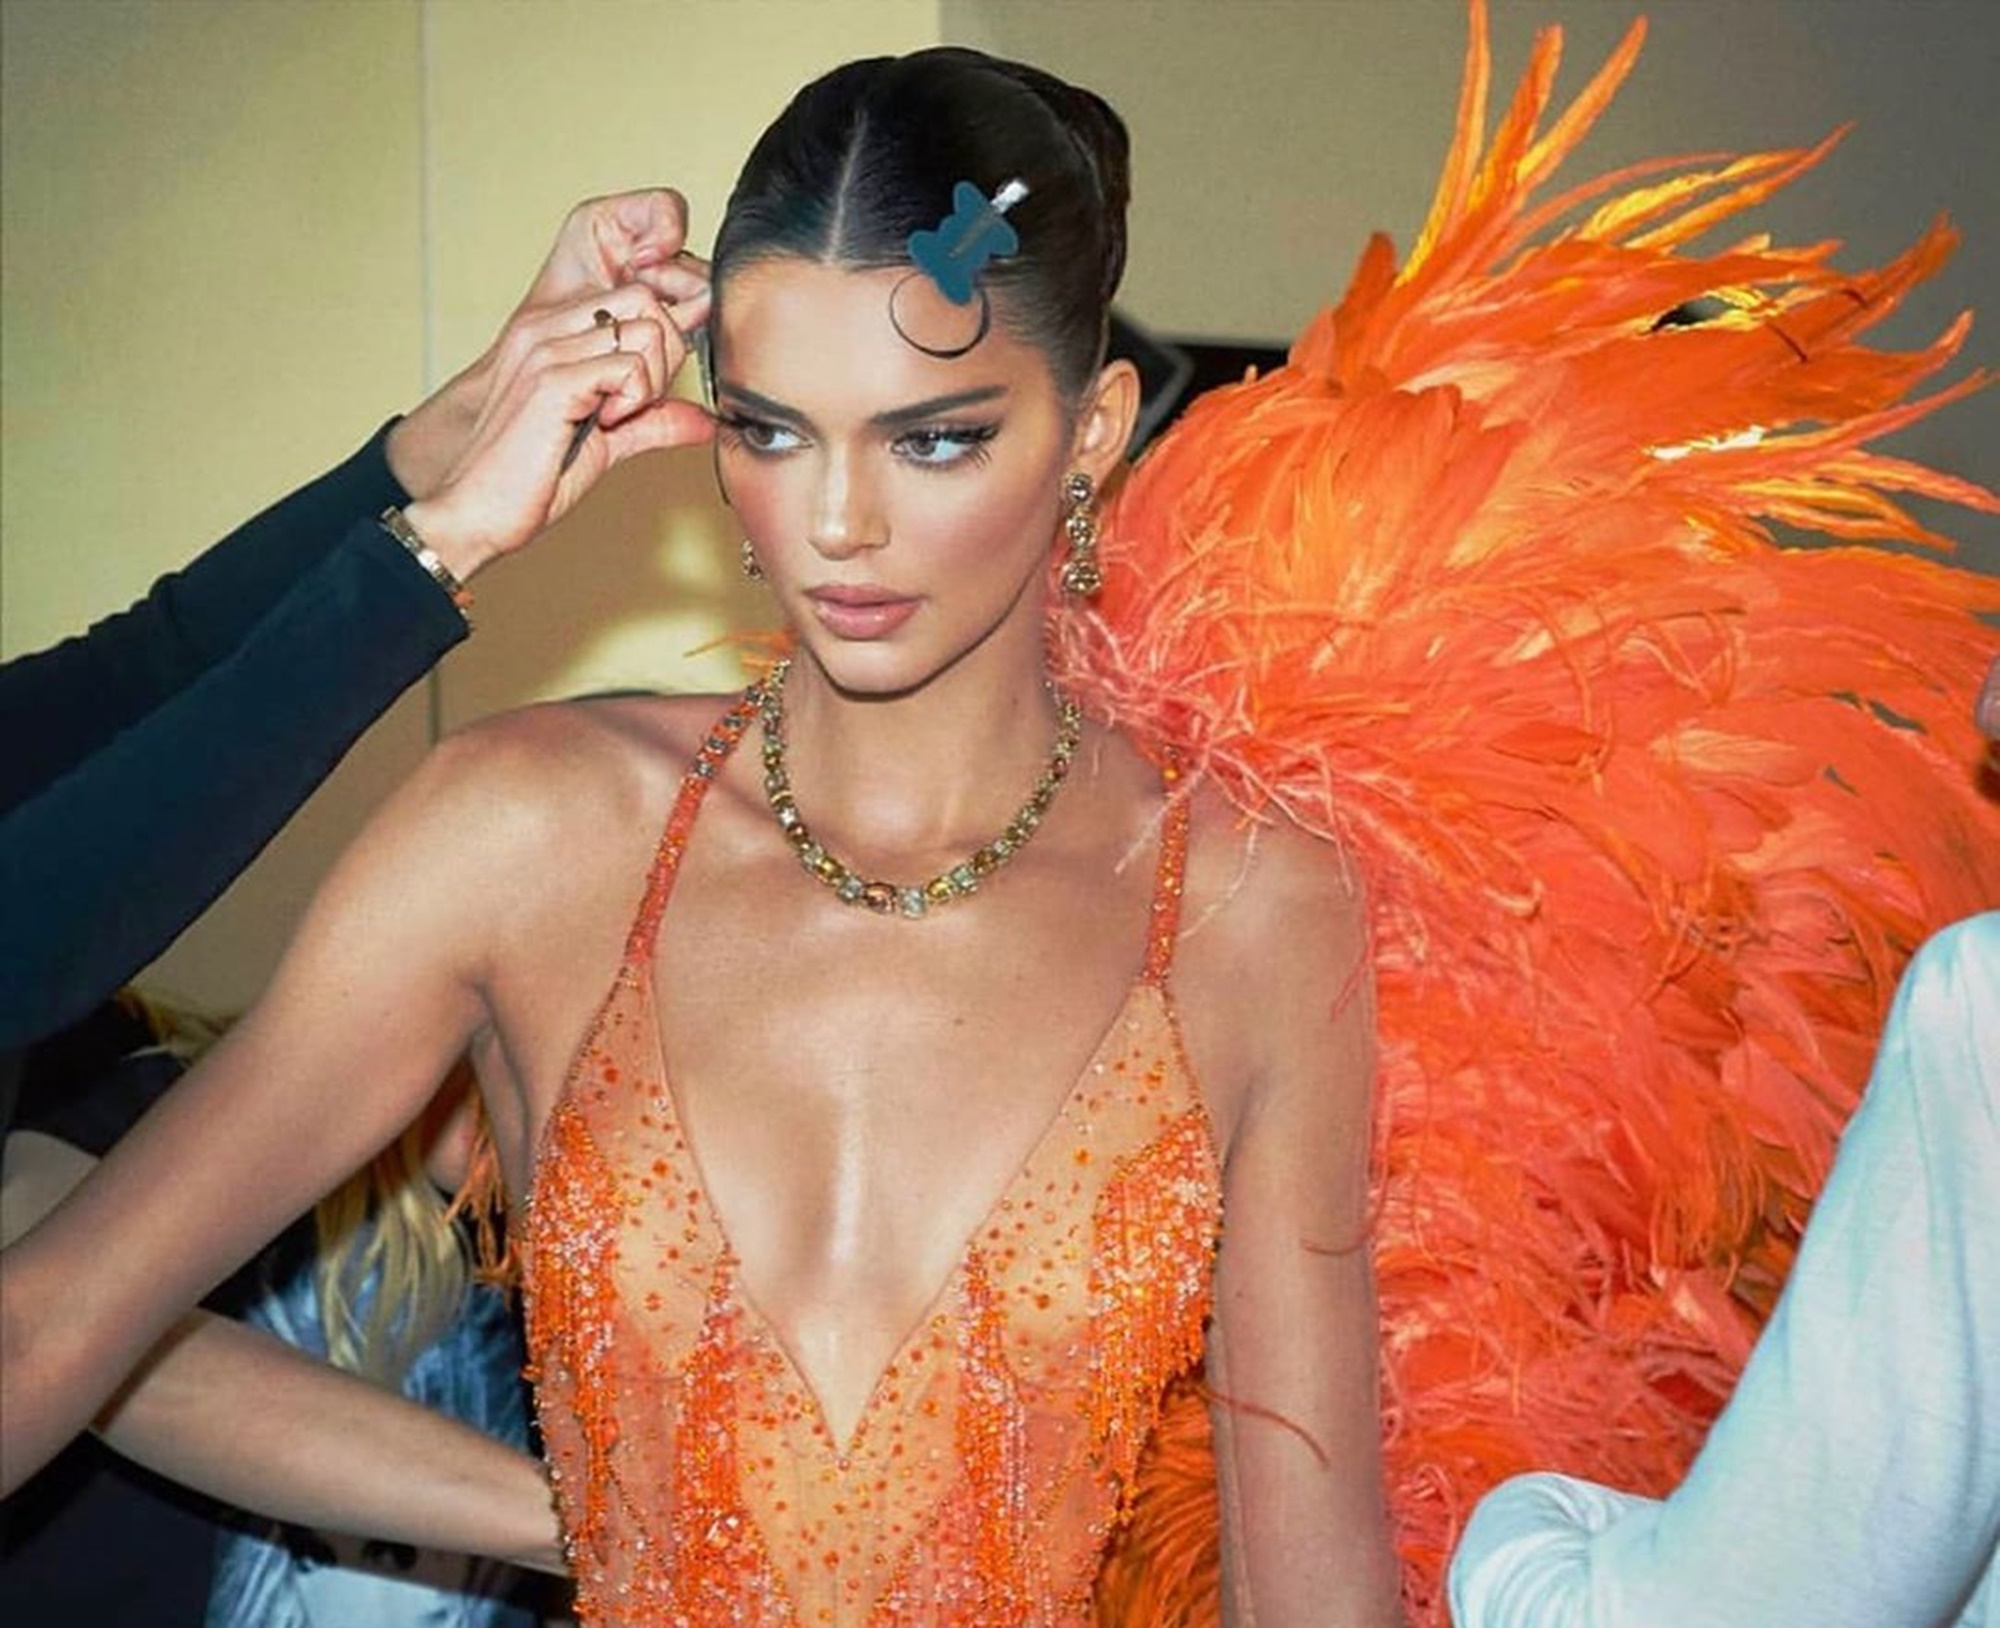 did-kendall-jenner-overreact-when-mom-kris-failed-to-include-her-in-the-mothers-day-photo-collage-here-is-why-fans-are-defending-the-kuwtk-matriarch